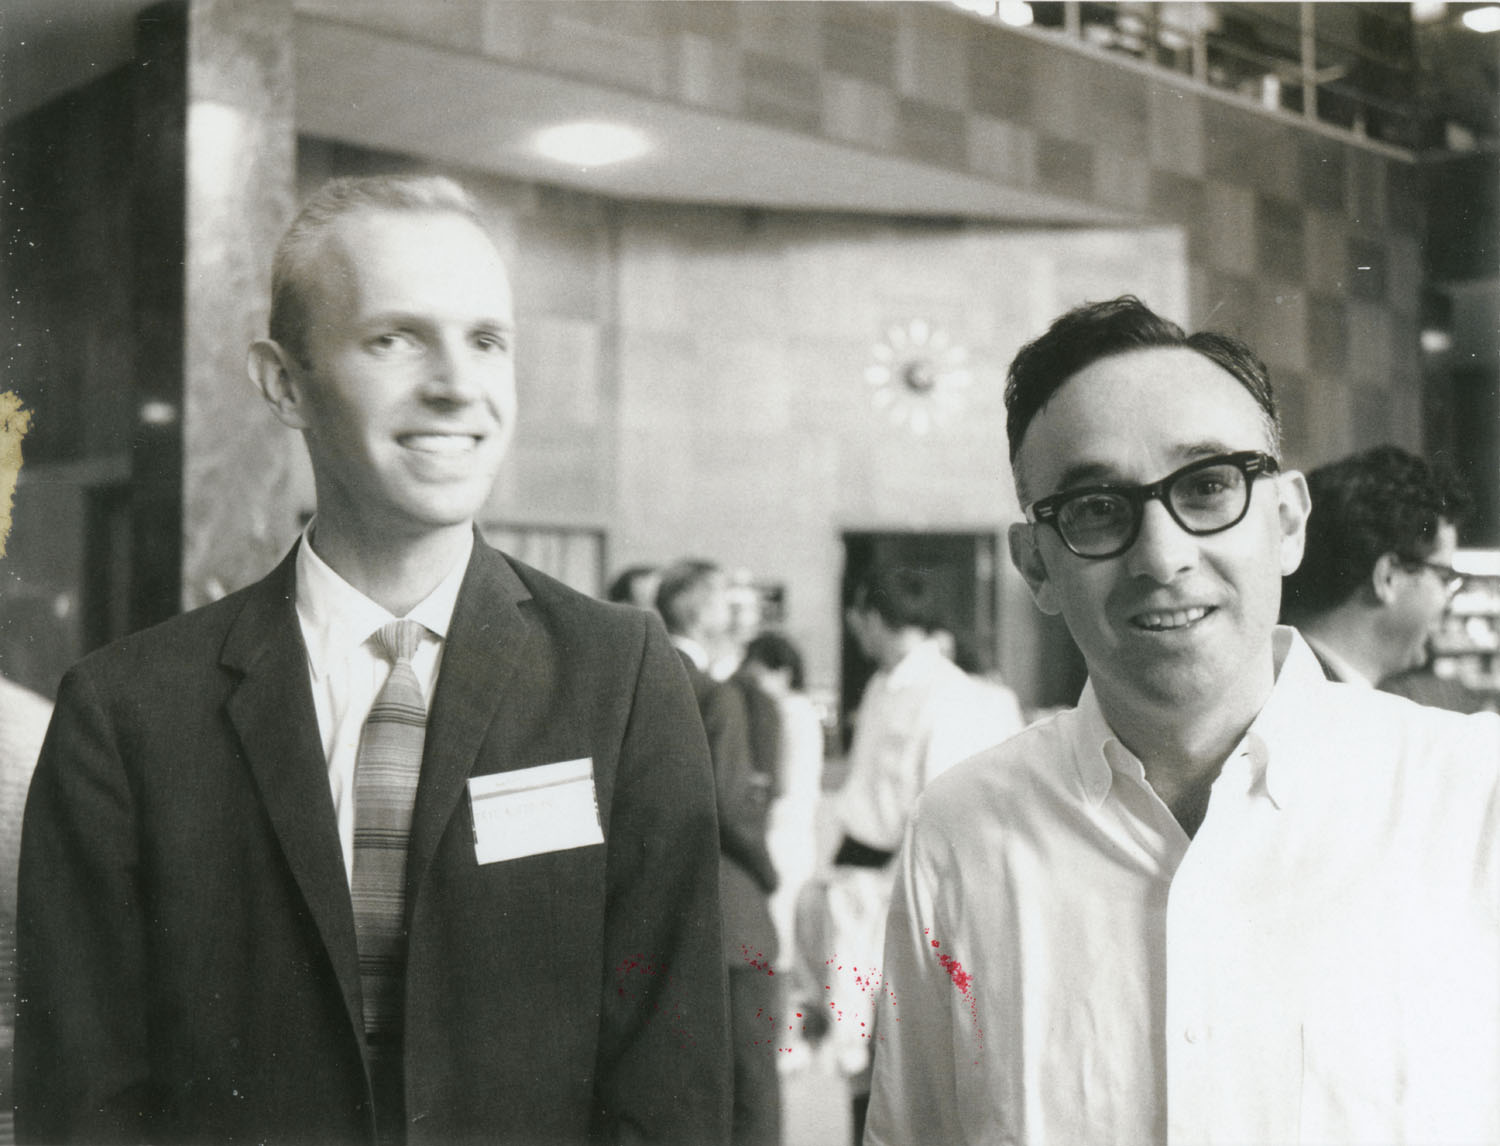 Eric Nordgren and Bob Ellis